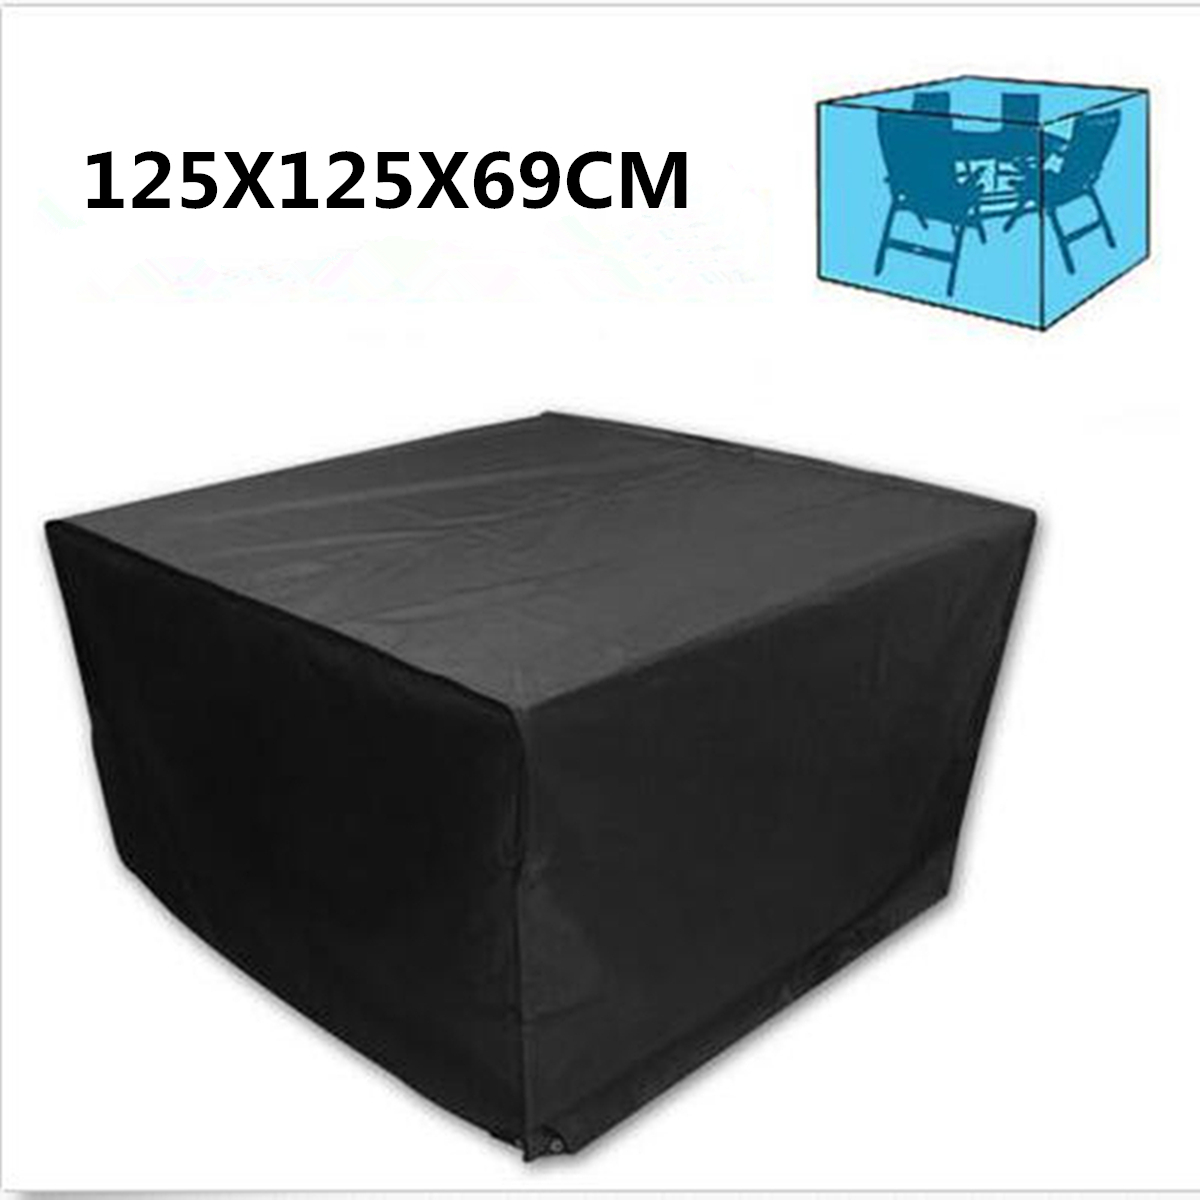 Large Waterproof Furniture Sofa Chair Set Cover Garden Outdoor Patio Protector Ebay